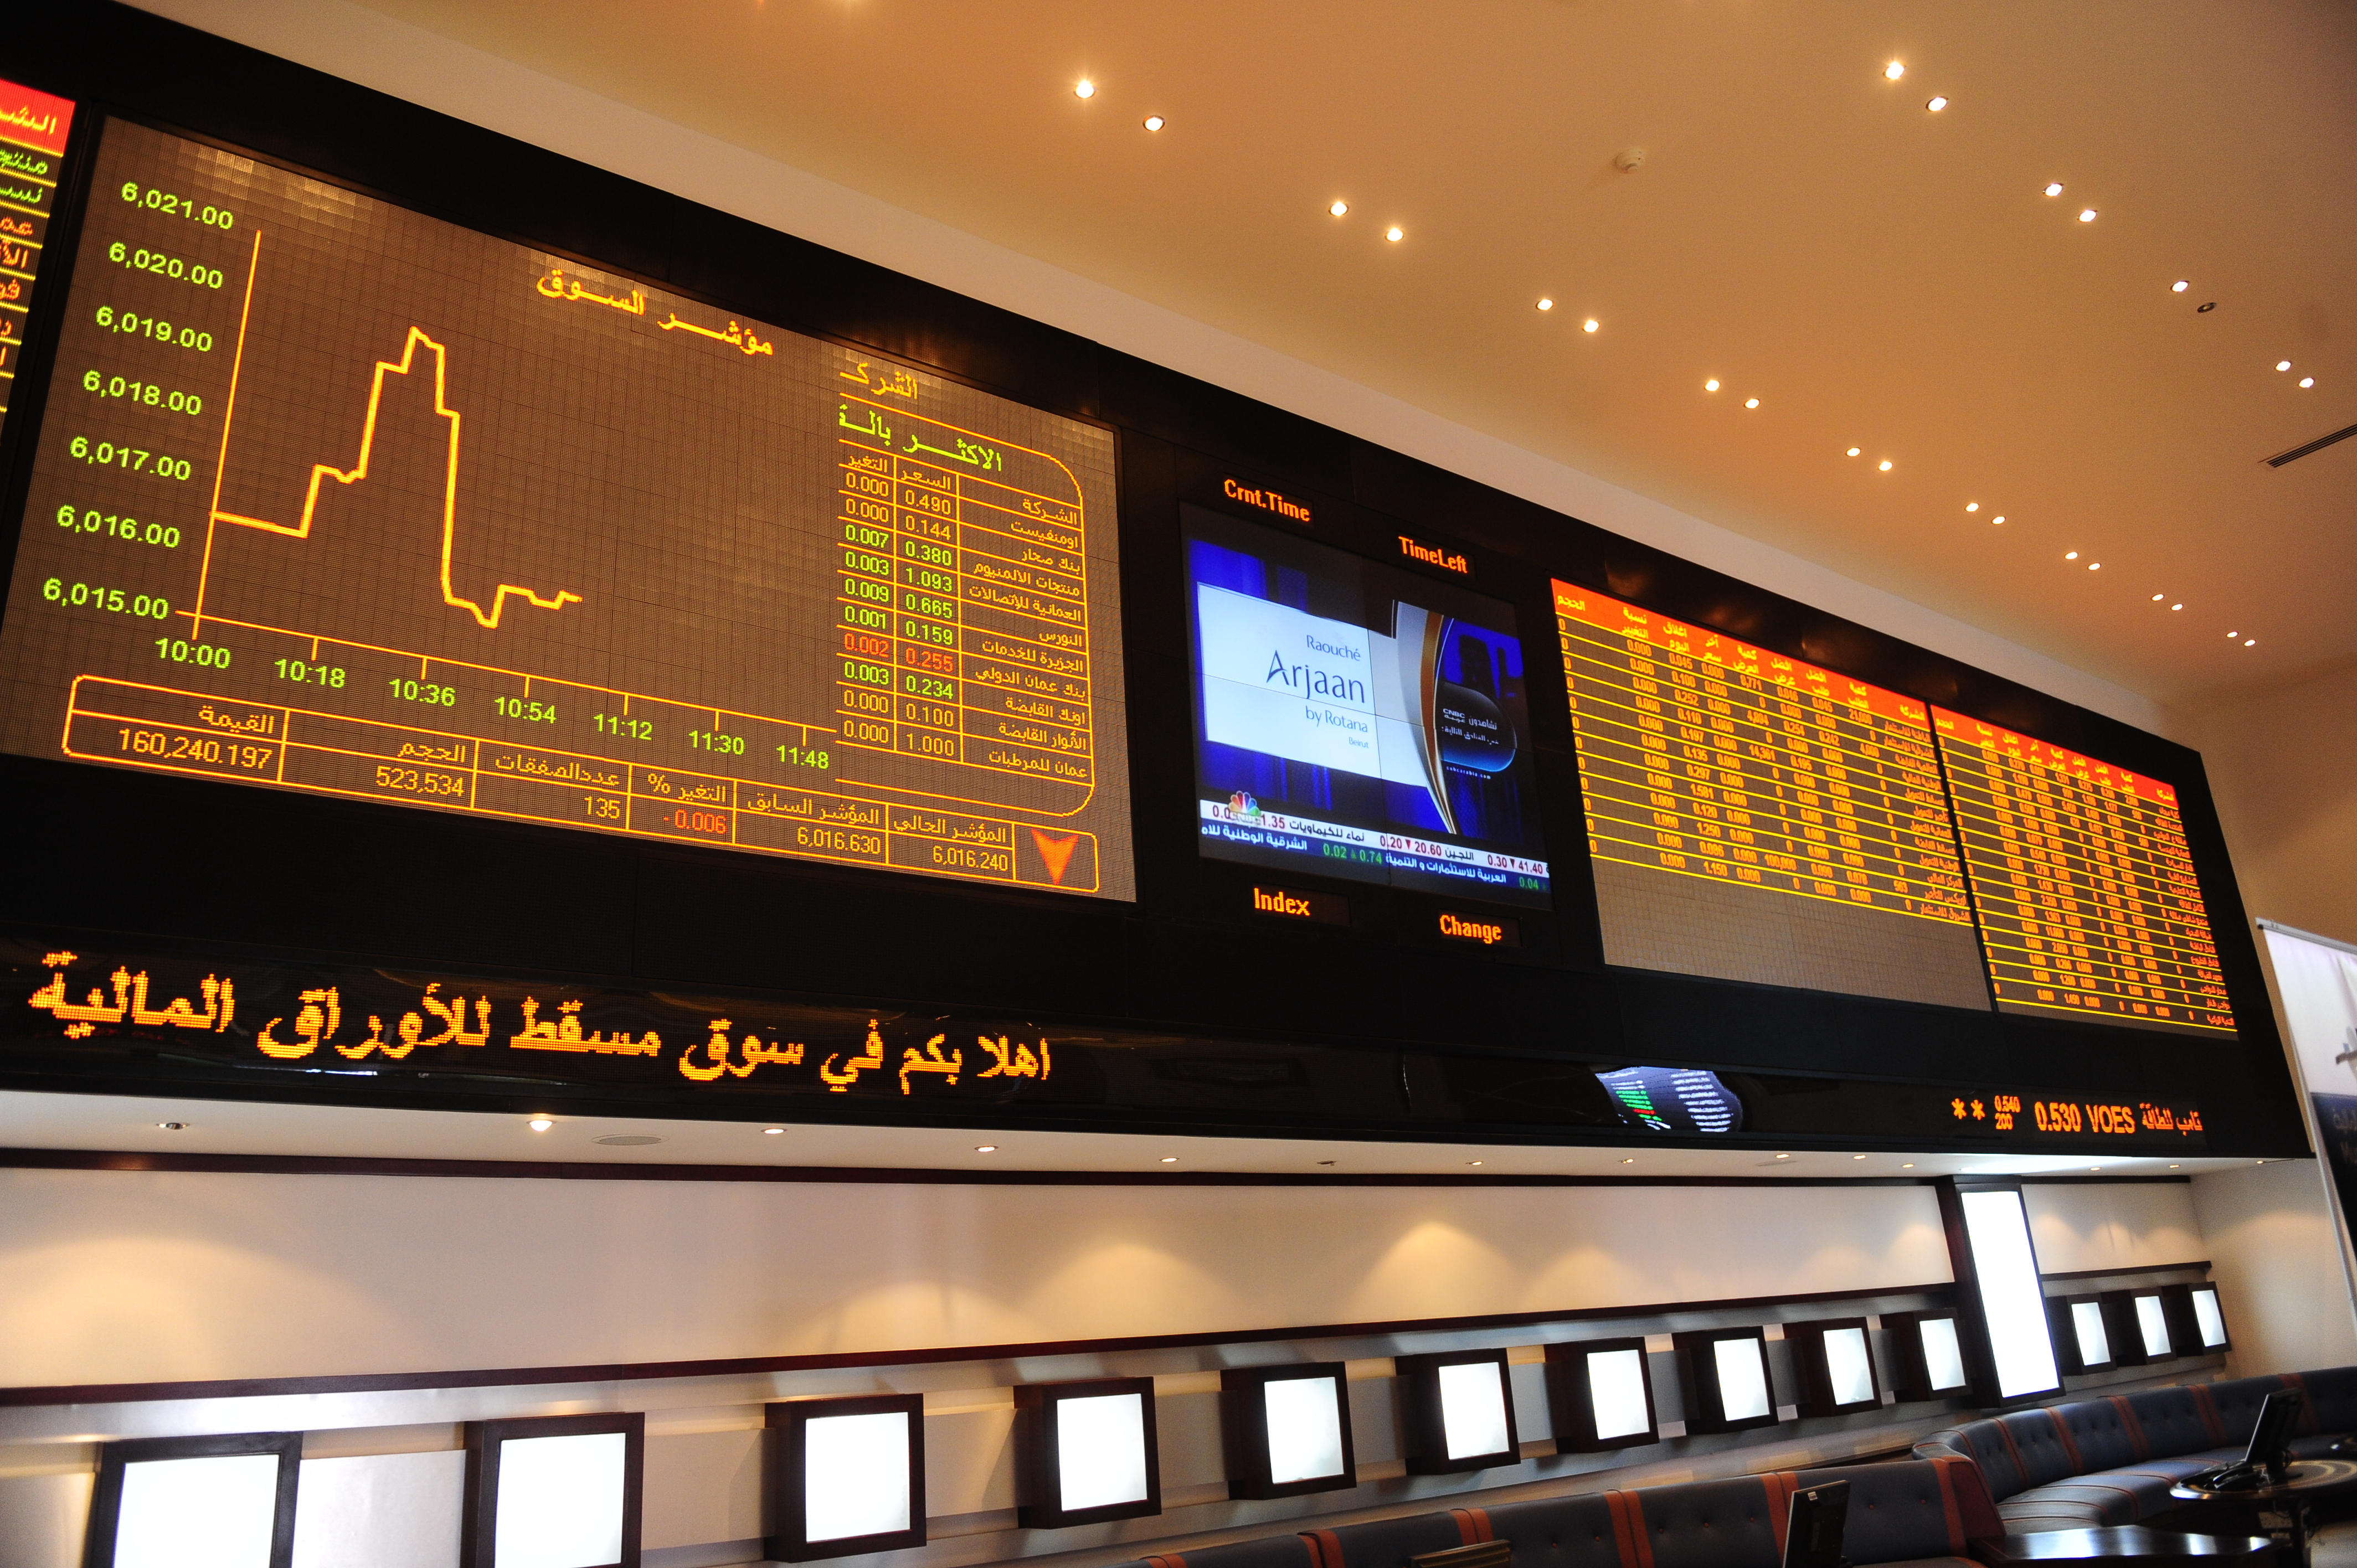 Oman shares fall taking cues from regional bourses